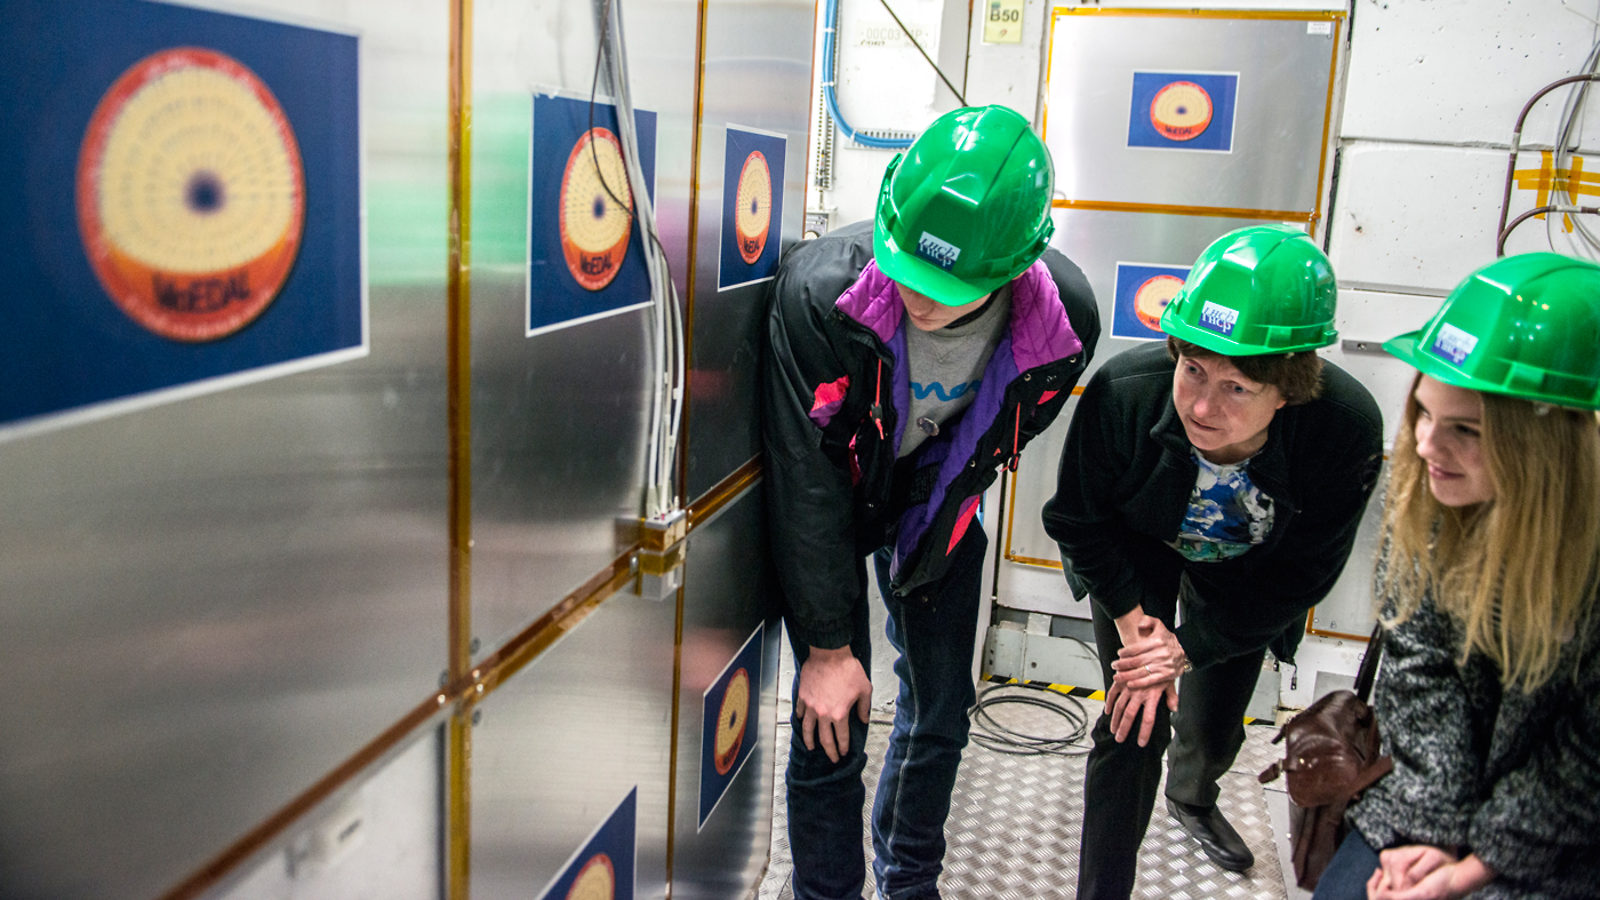 Students will help MoEDAL experiment at CERN seek evidence of magnetic monopoles, microscopic black holes and other phenomena